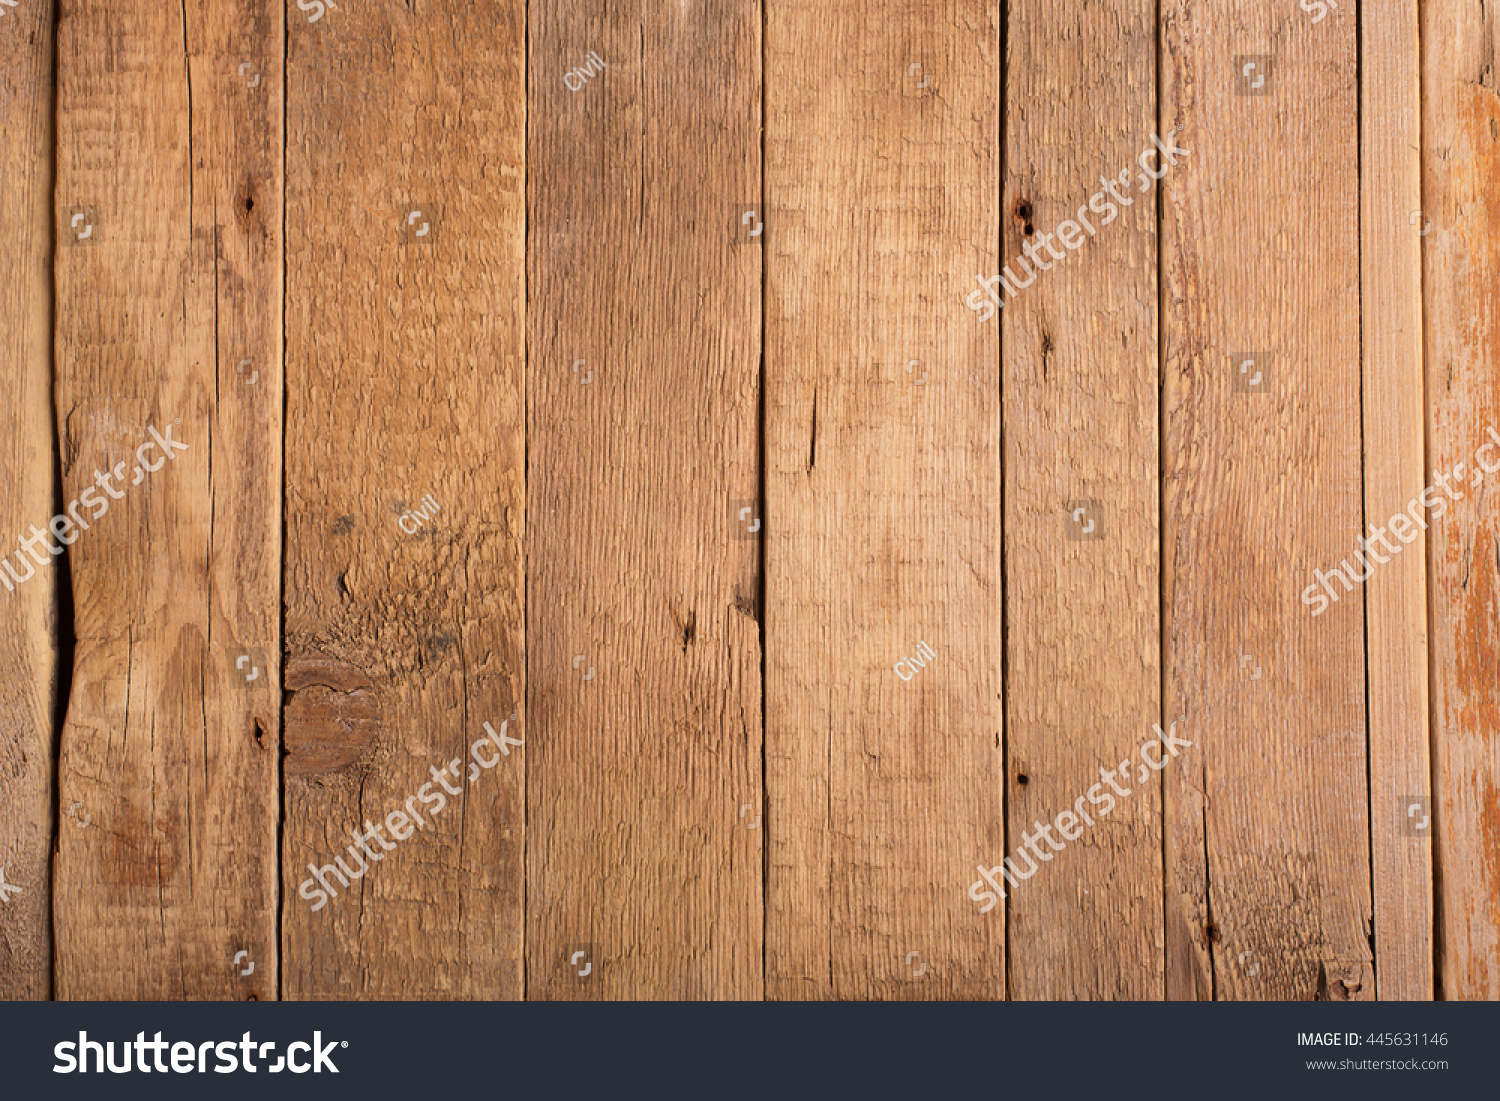 Wooden rustic background. Old boards. Can be used as space for your text or image. top view